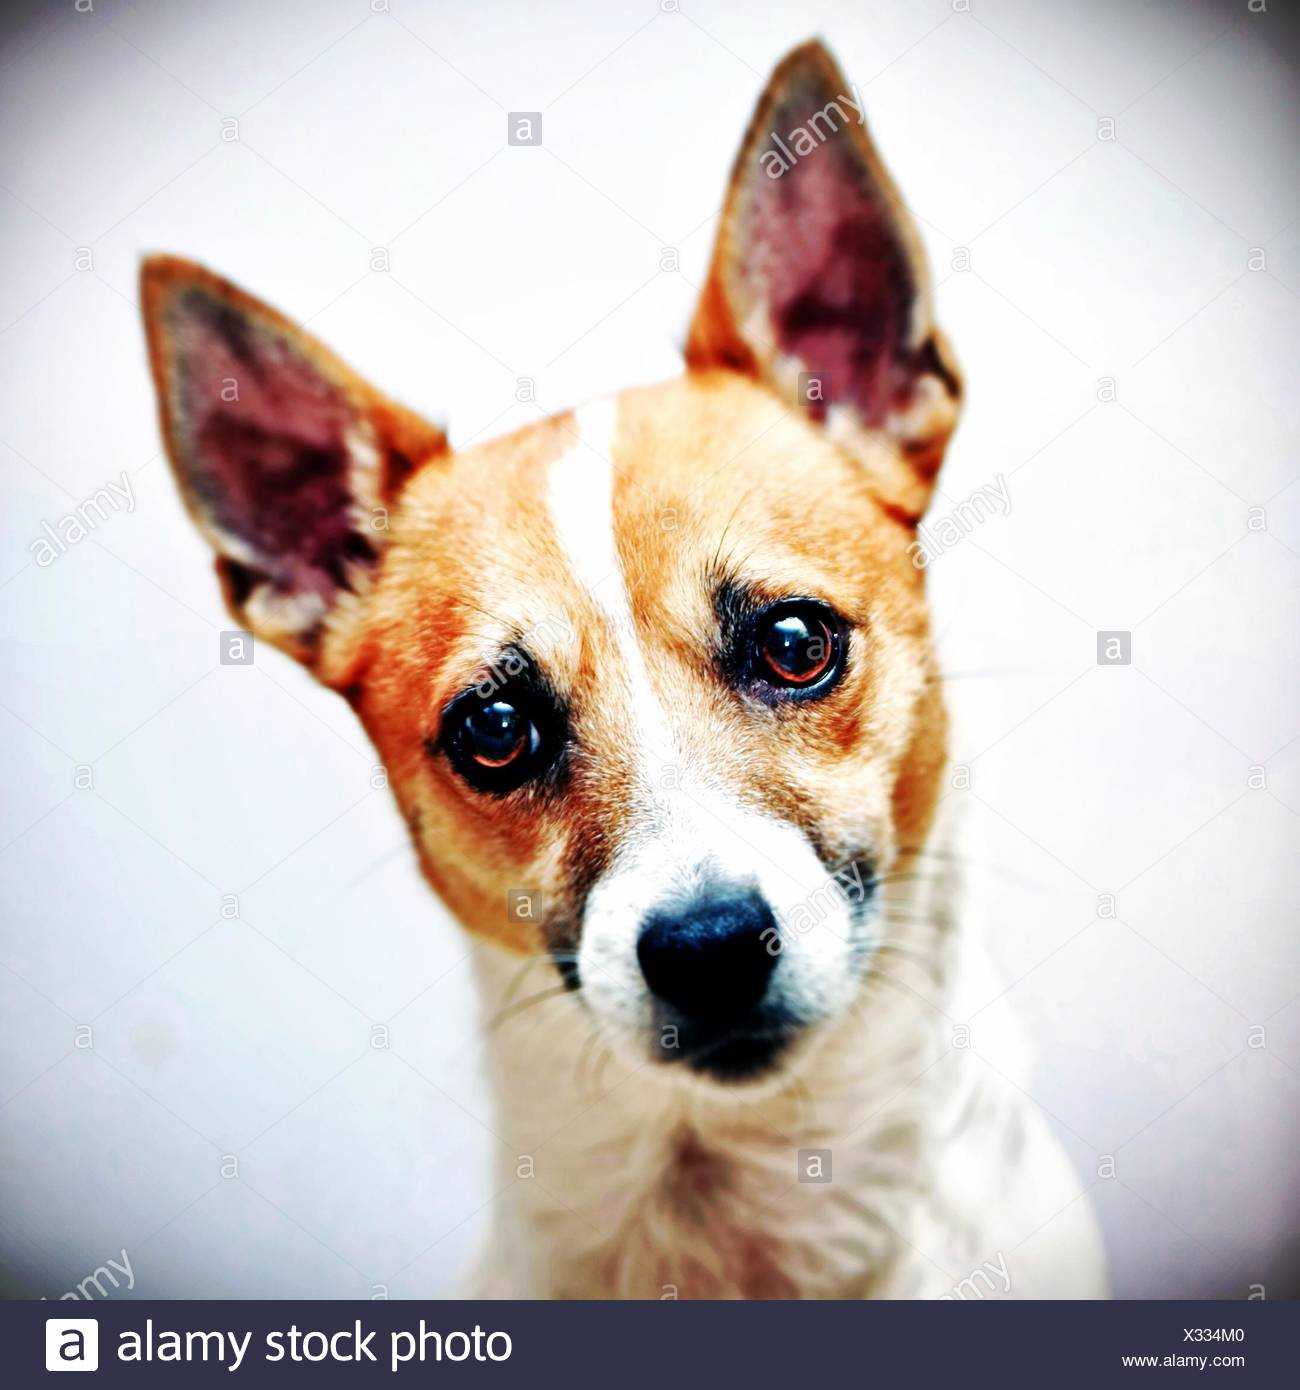 Jack Russell Terrier dog head shot Photo Stock